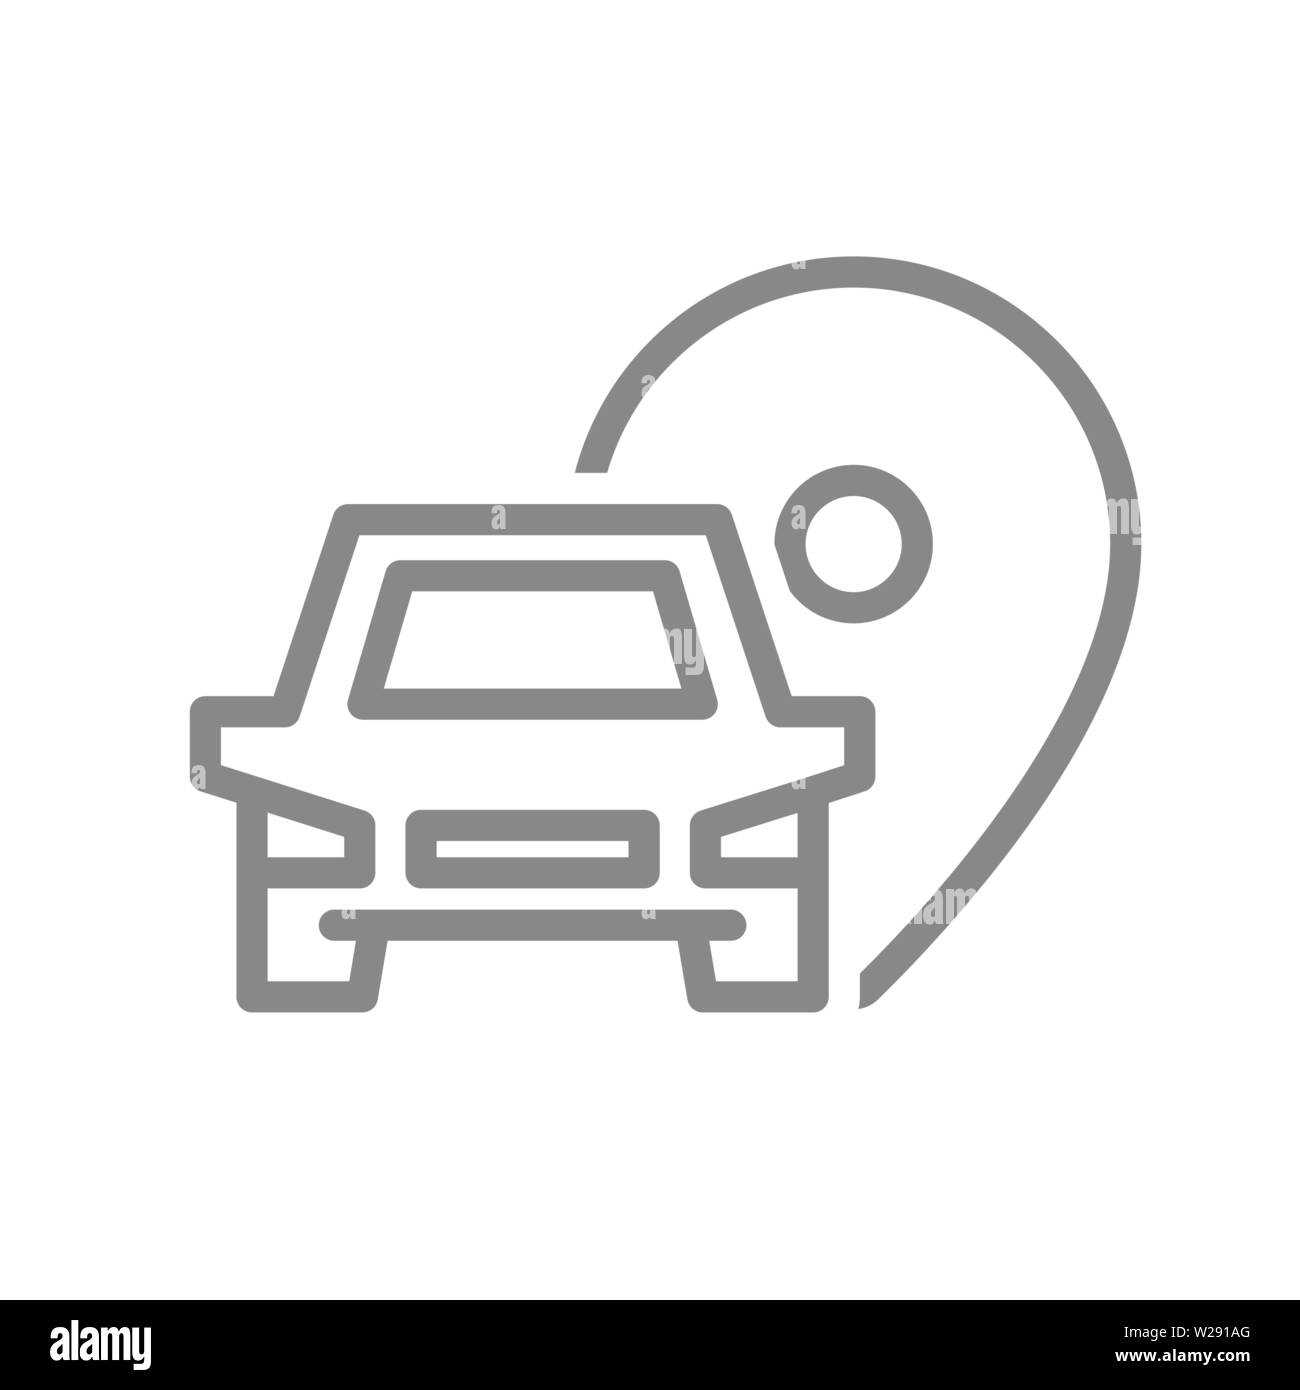 Location pin with car line icon. Parking symbol and sign - Stock Image